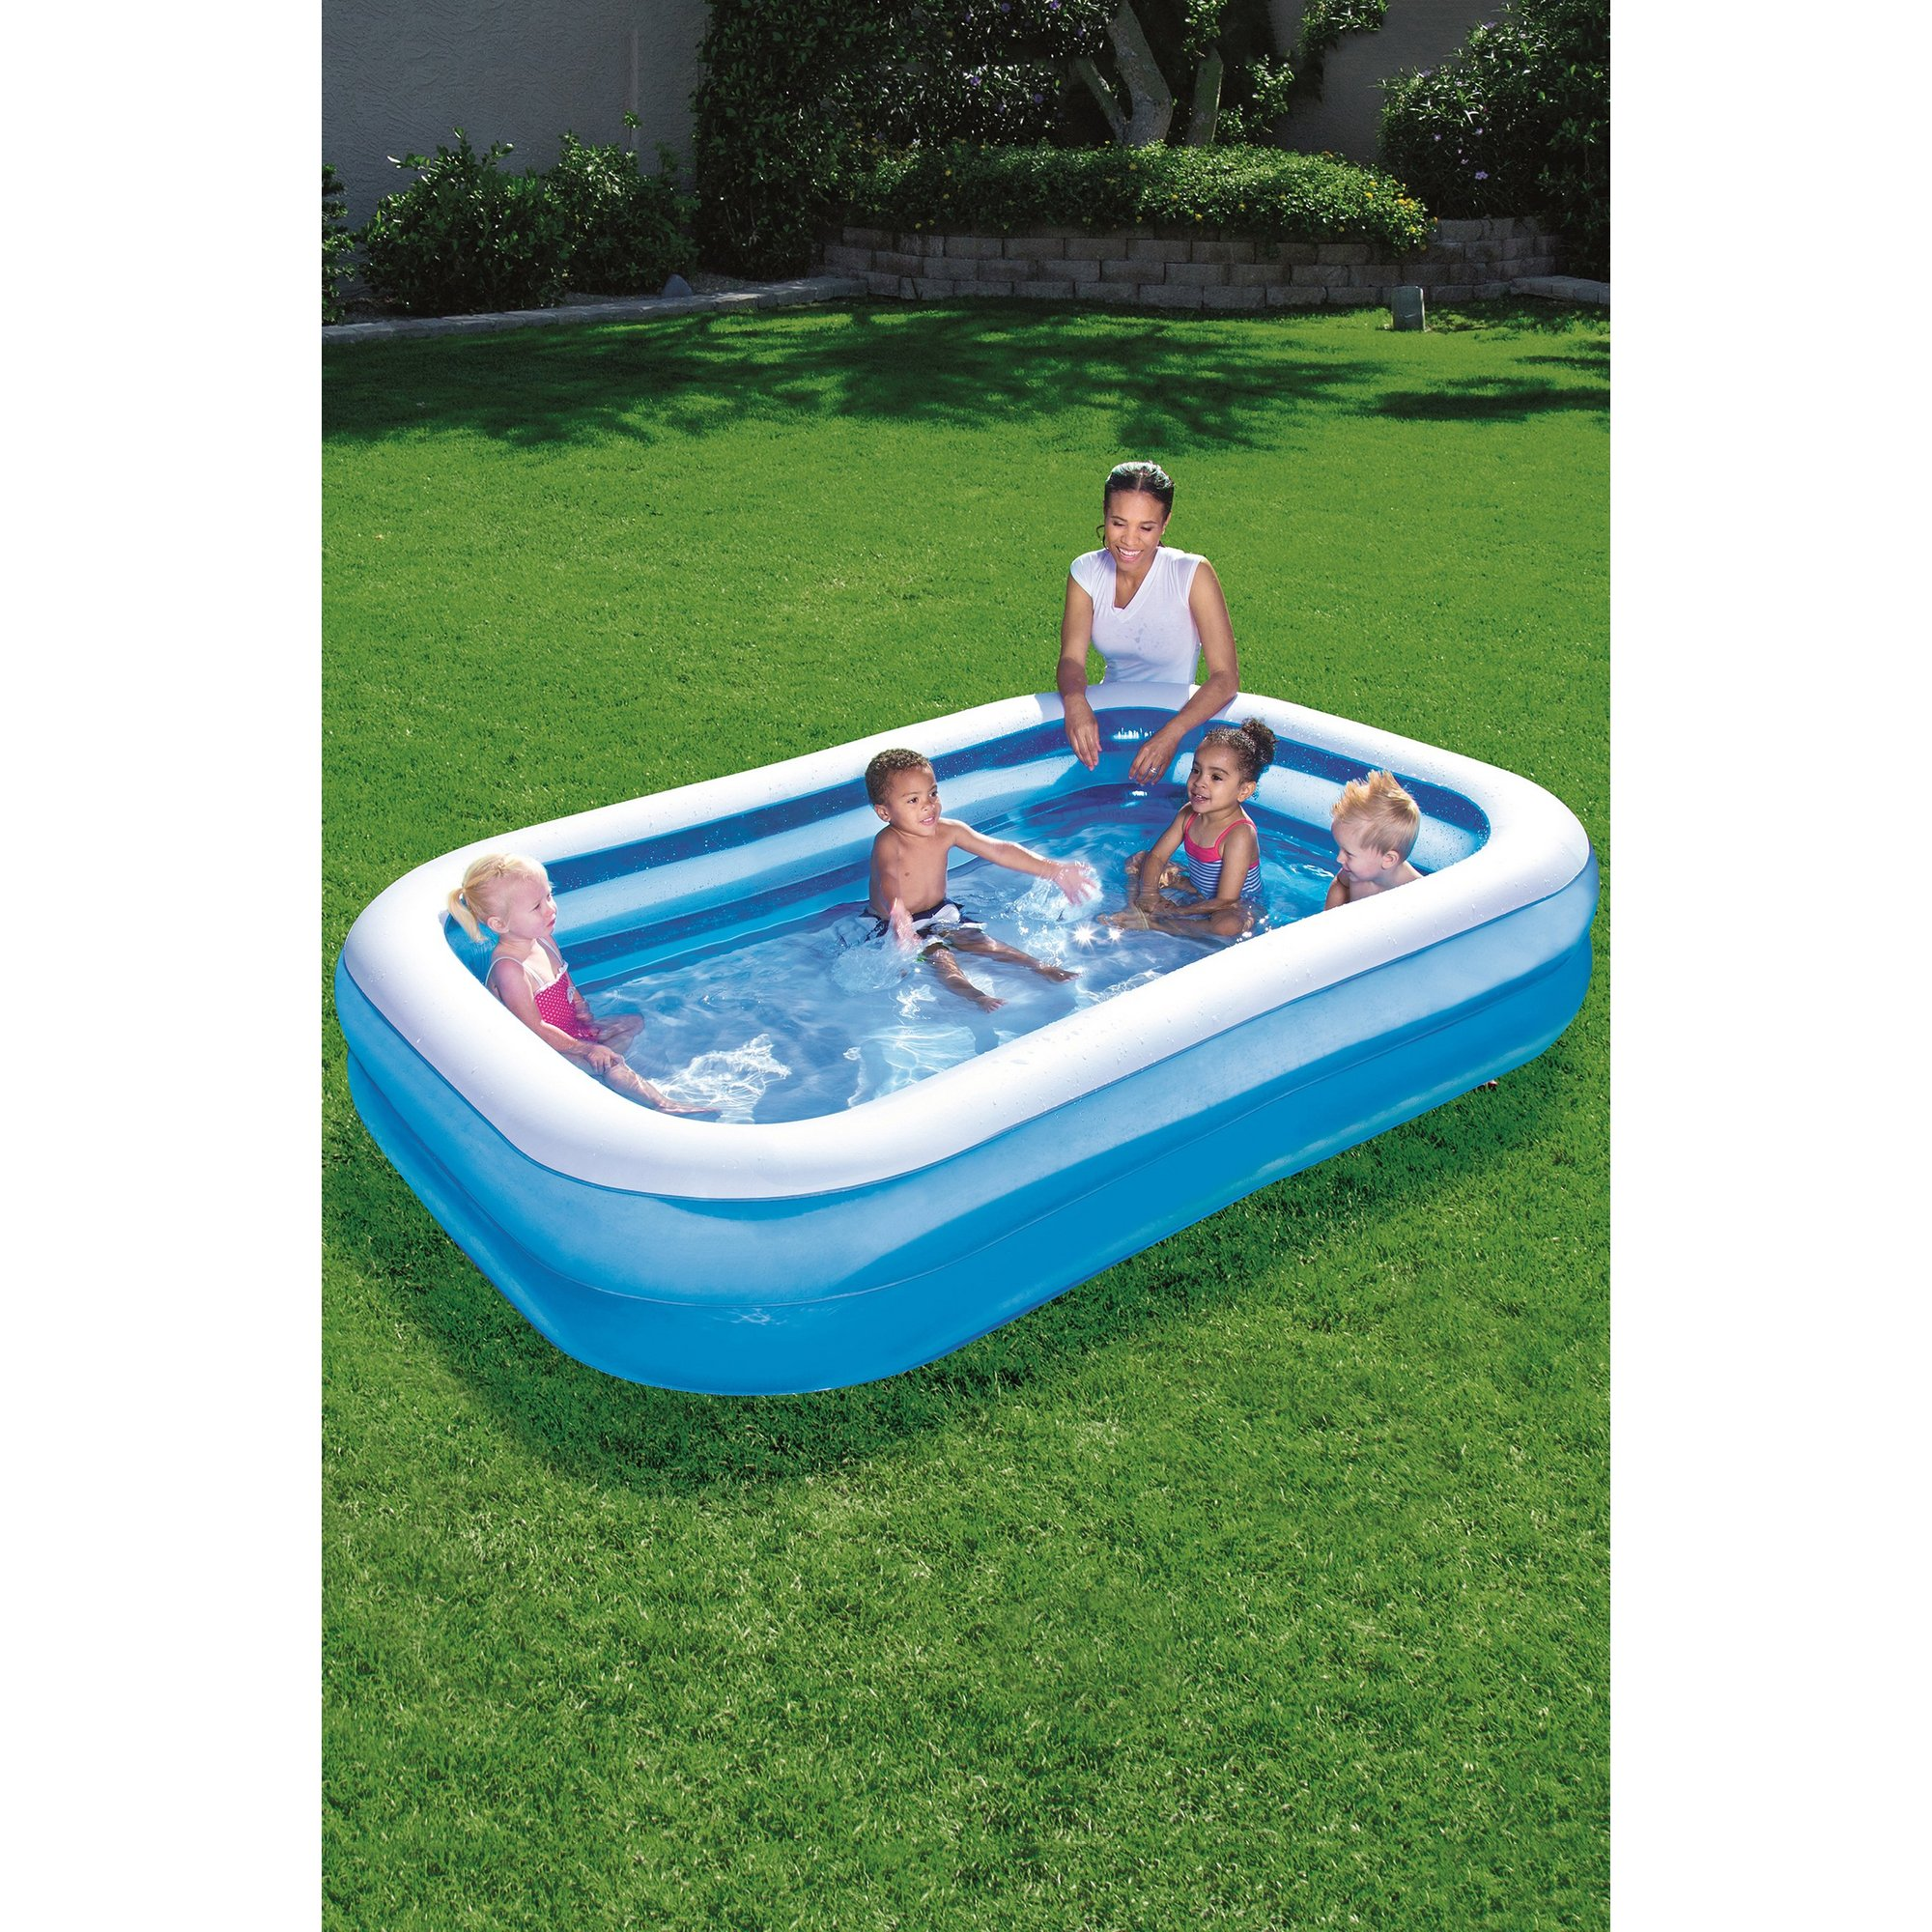 Image of Bestway 8ft 7 Inch Blue Rectangle Family Pool